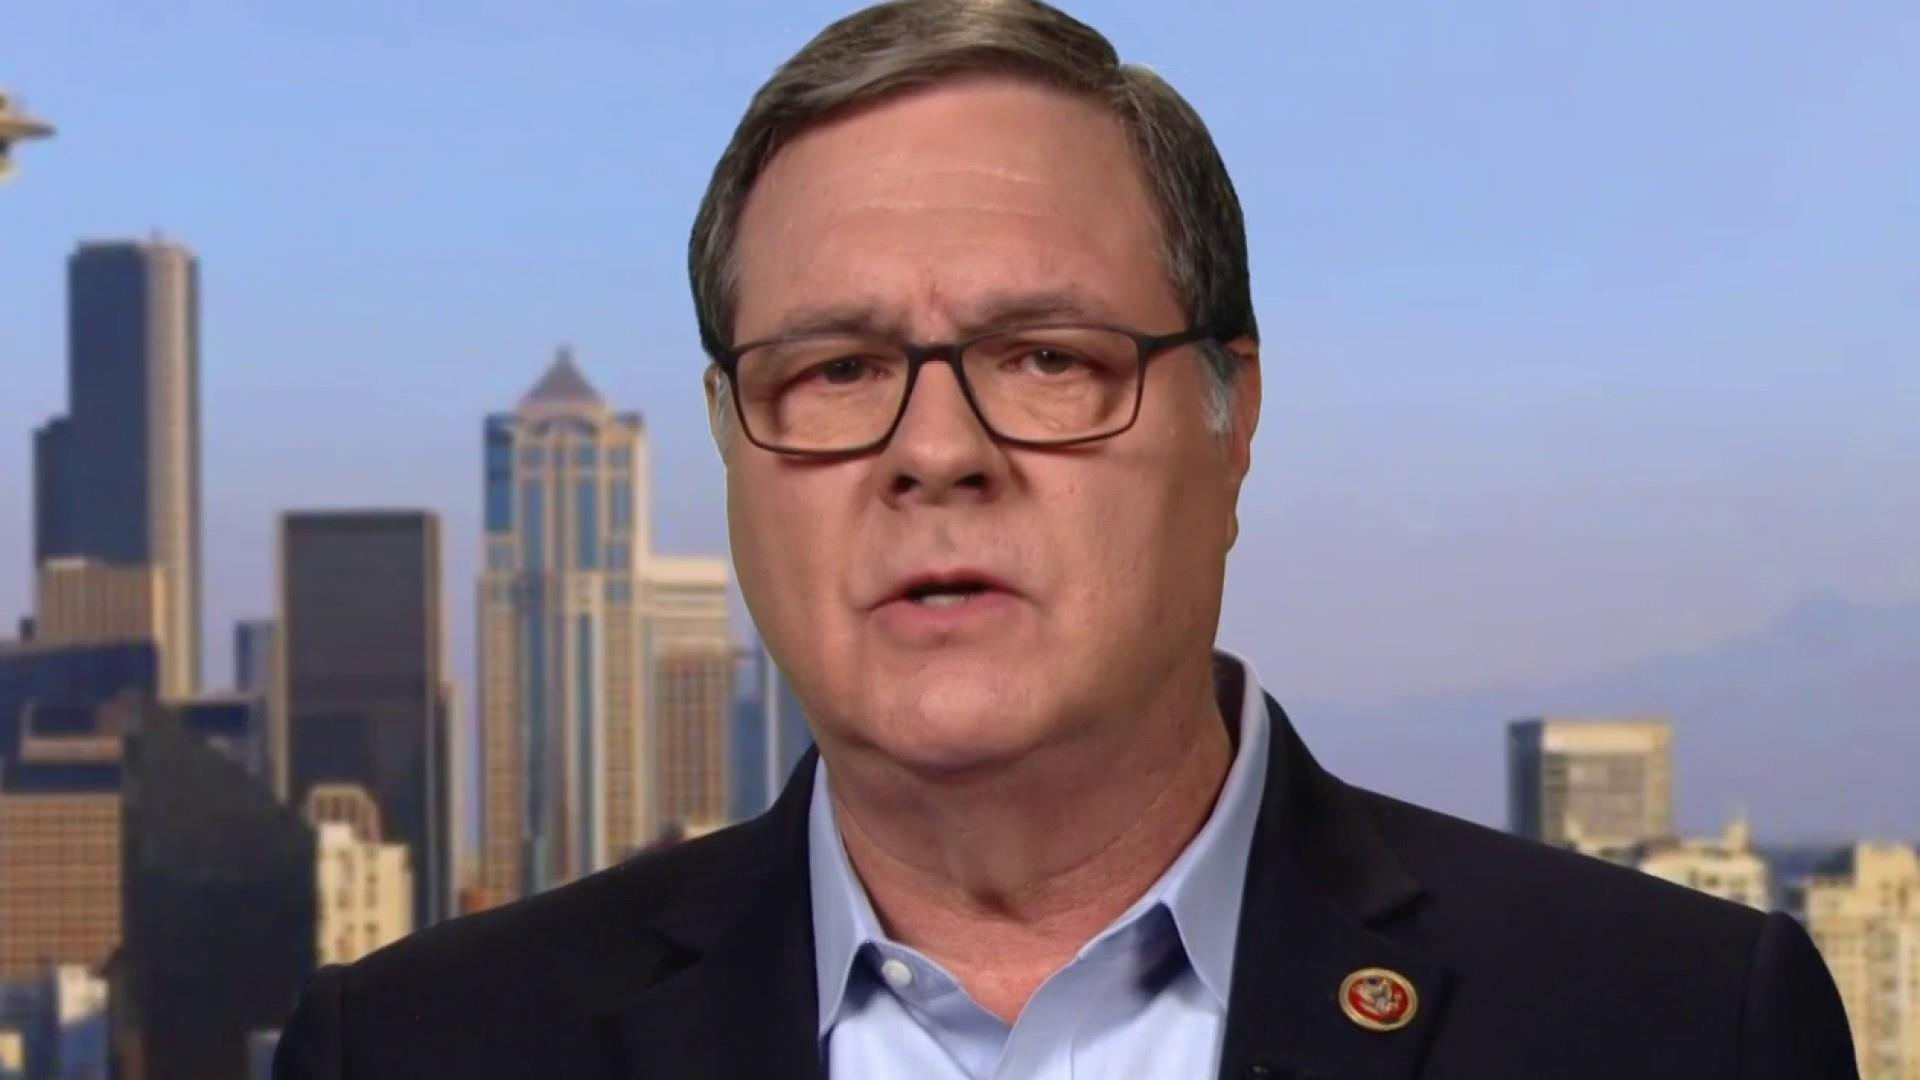 Rep. Heck: DOJ subpoenas are 'constitutional responsibility,' not political theater